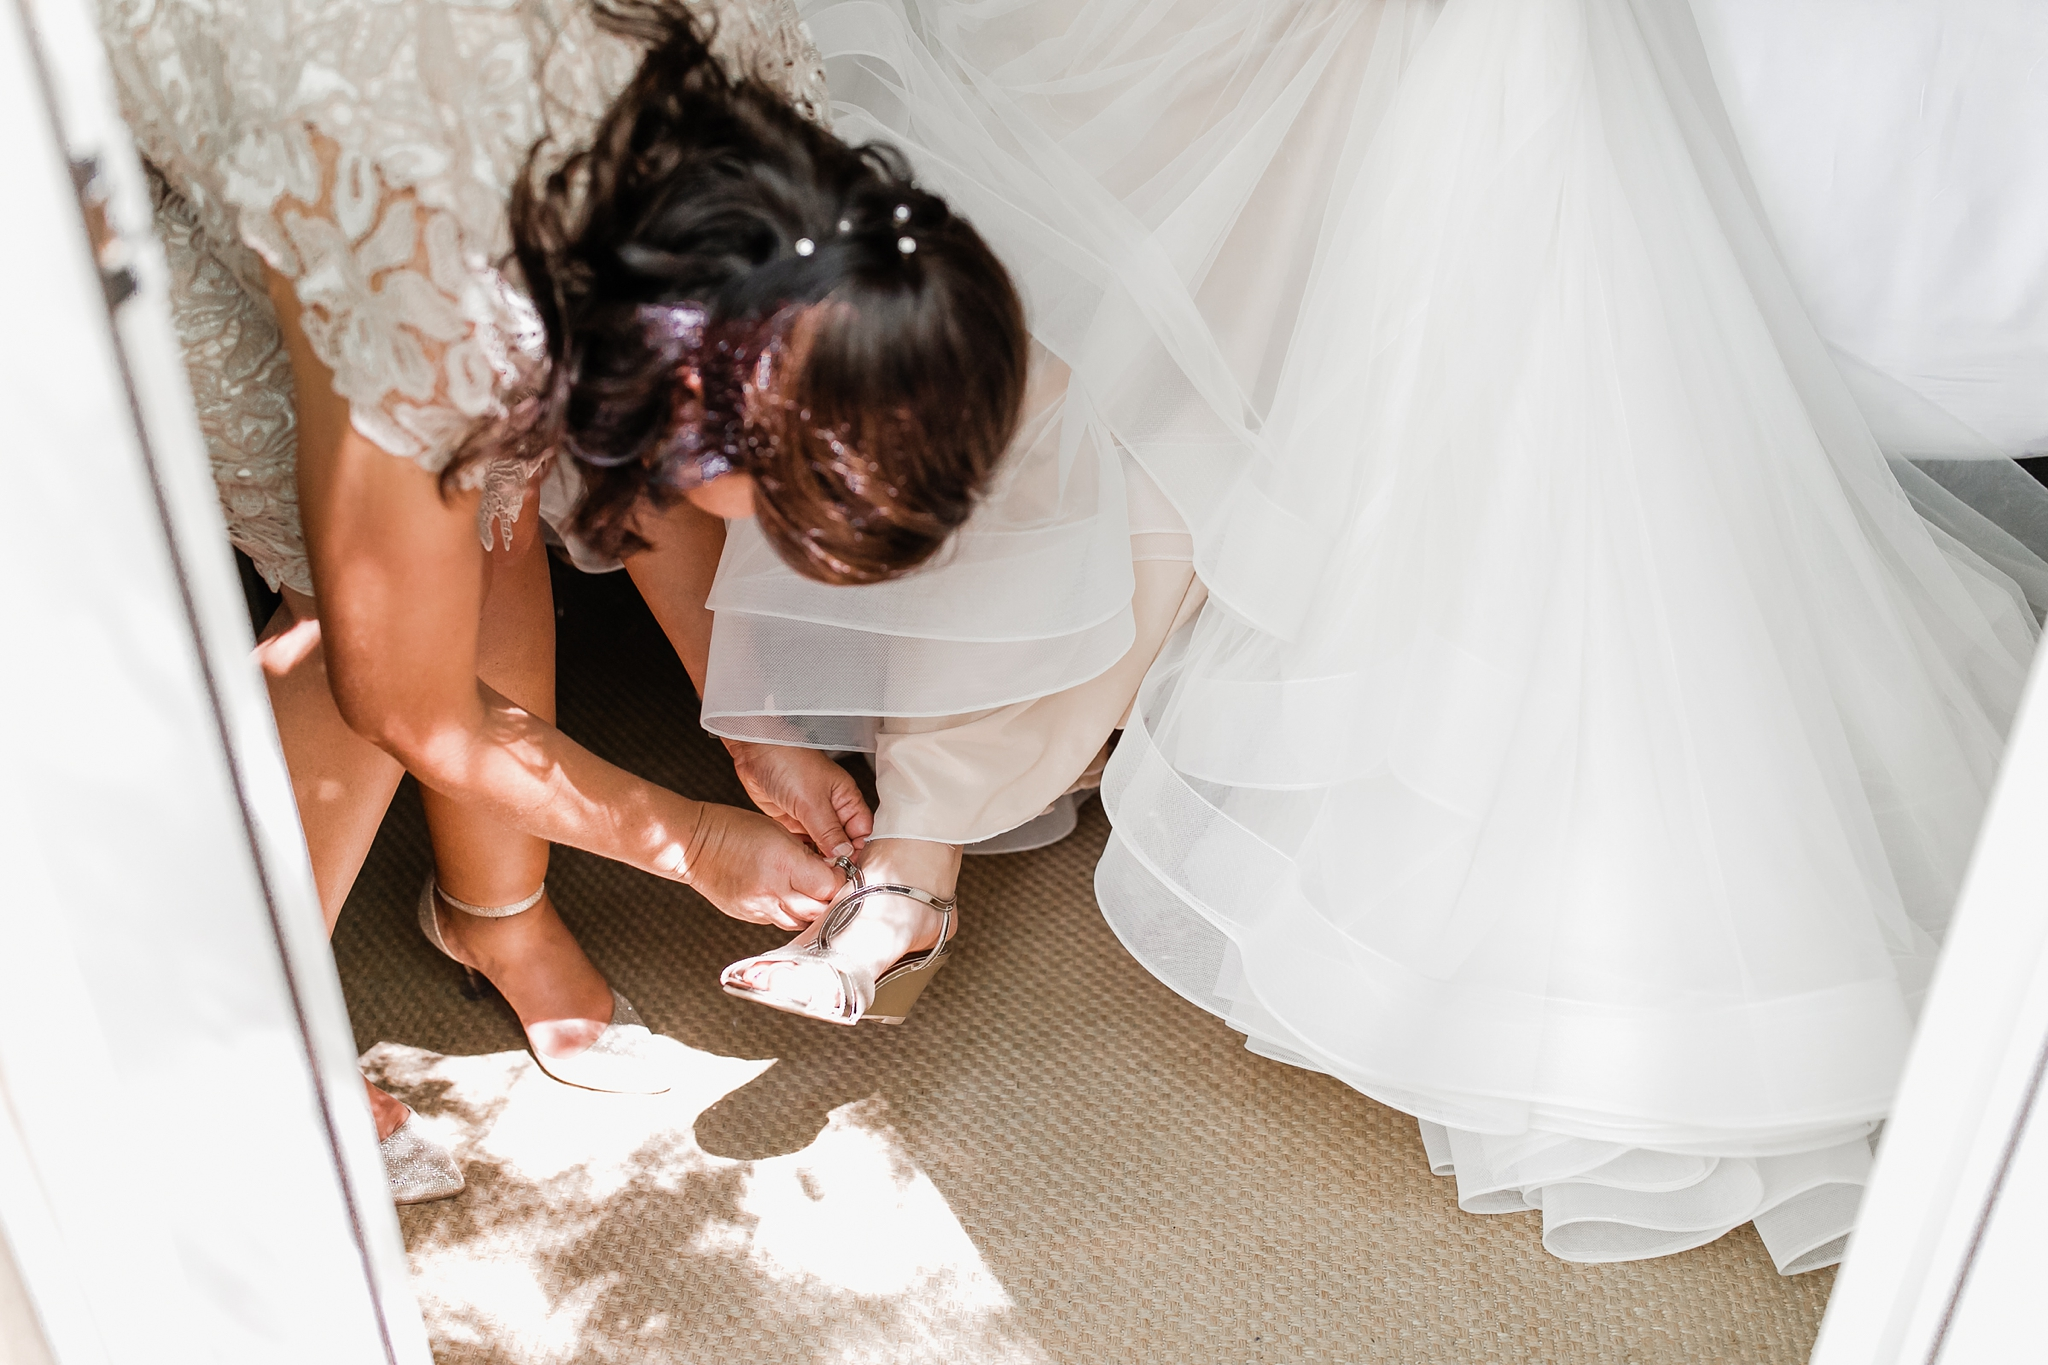 Alicia+lucia+photography+-+albuquerque+wedding+photographer+-+santa+fe+wedding+photography+-+new+mexico+wedding+photographer+-+new+mexico+wedding+-+summer+wedding+-+los+poblanos+wedding+-+albuquerque+wedding_0011.jpg